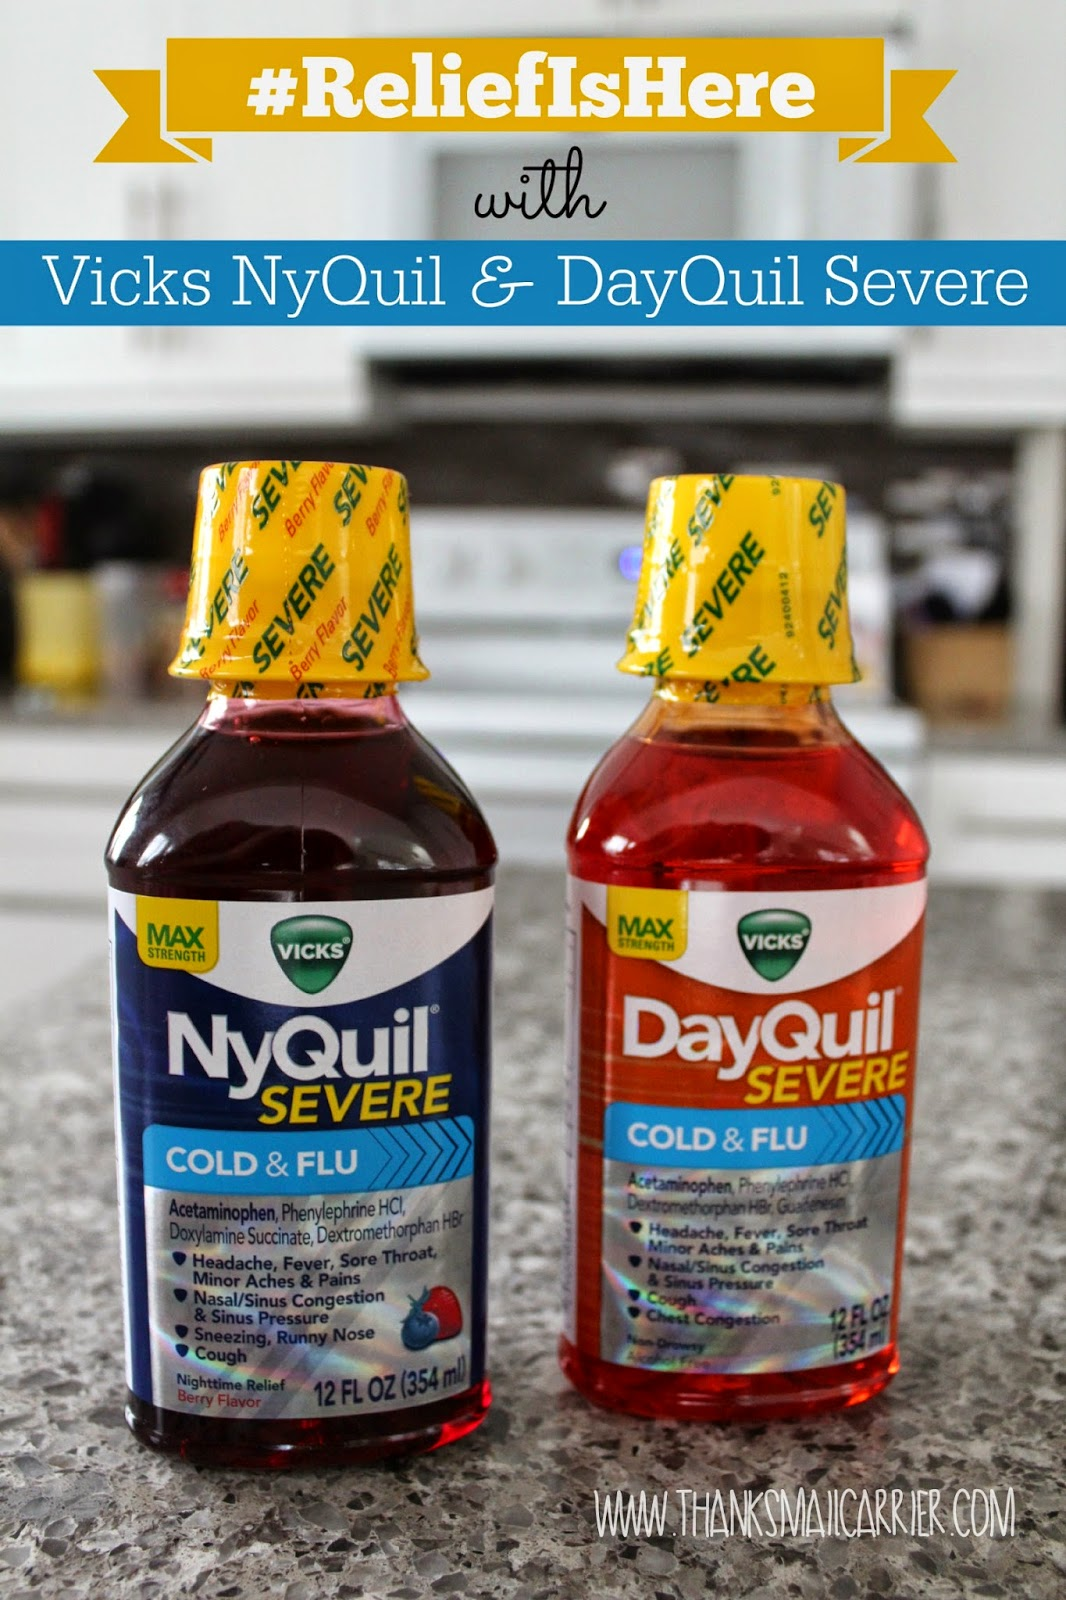 Easy-to-read patient leaflet for NyQuil. Includes indications, proper use, special instructions, precautions, and possible side effects.